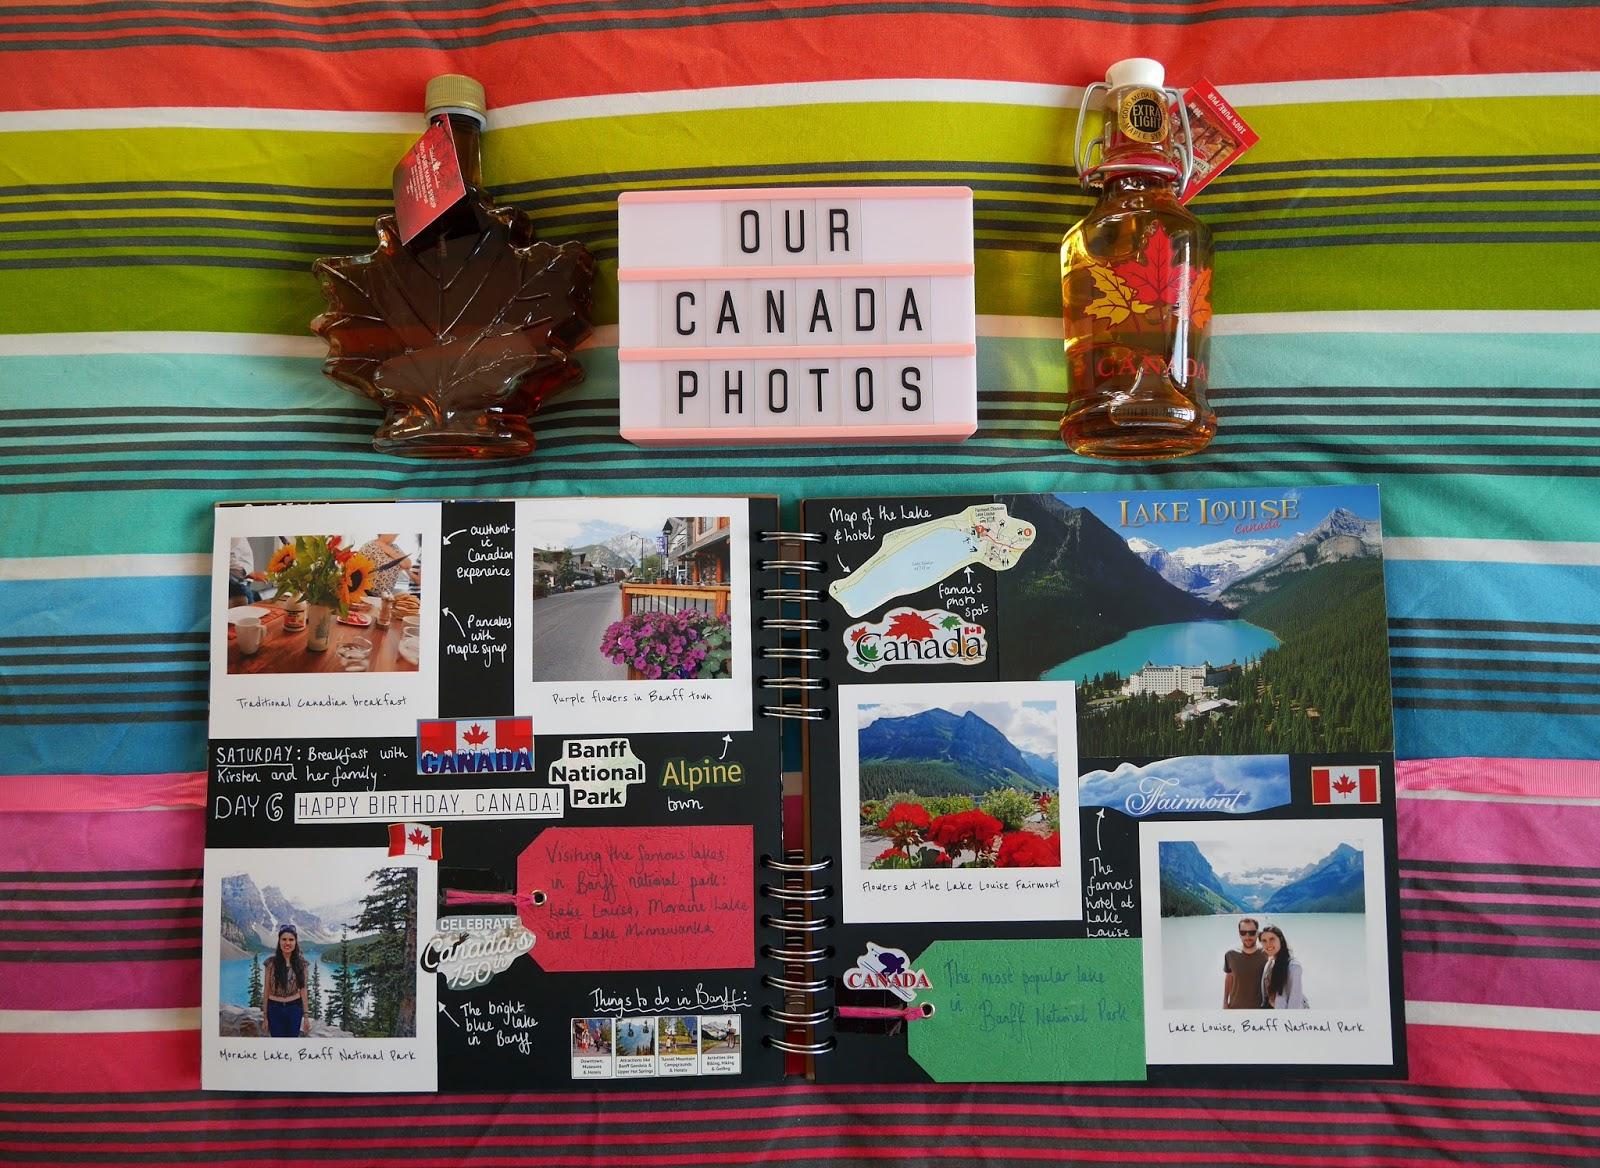 Canada travel scrapbook pages 7-8 (Banff National Park) featuring Printiki's retro prints